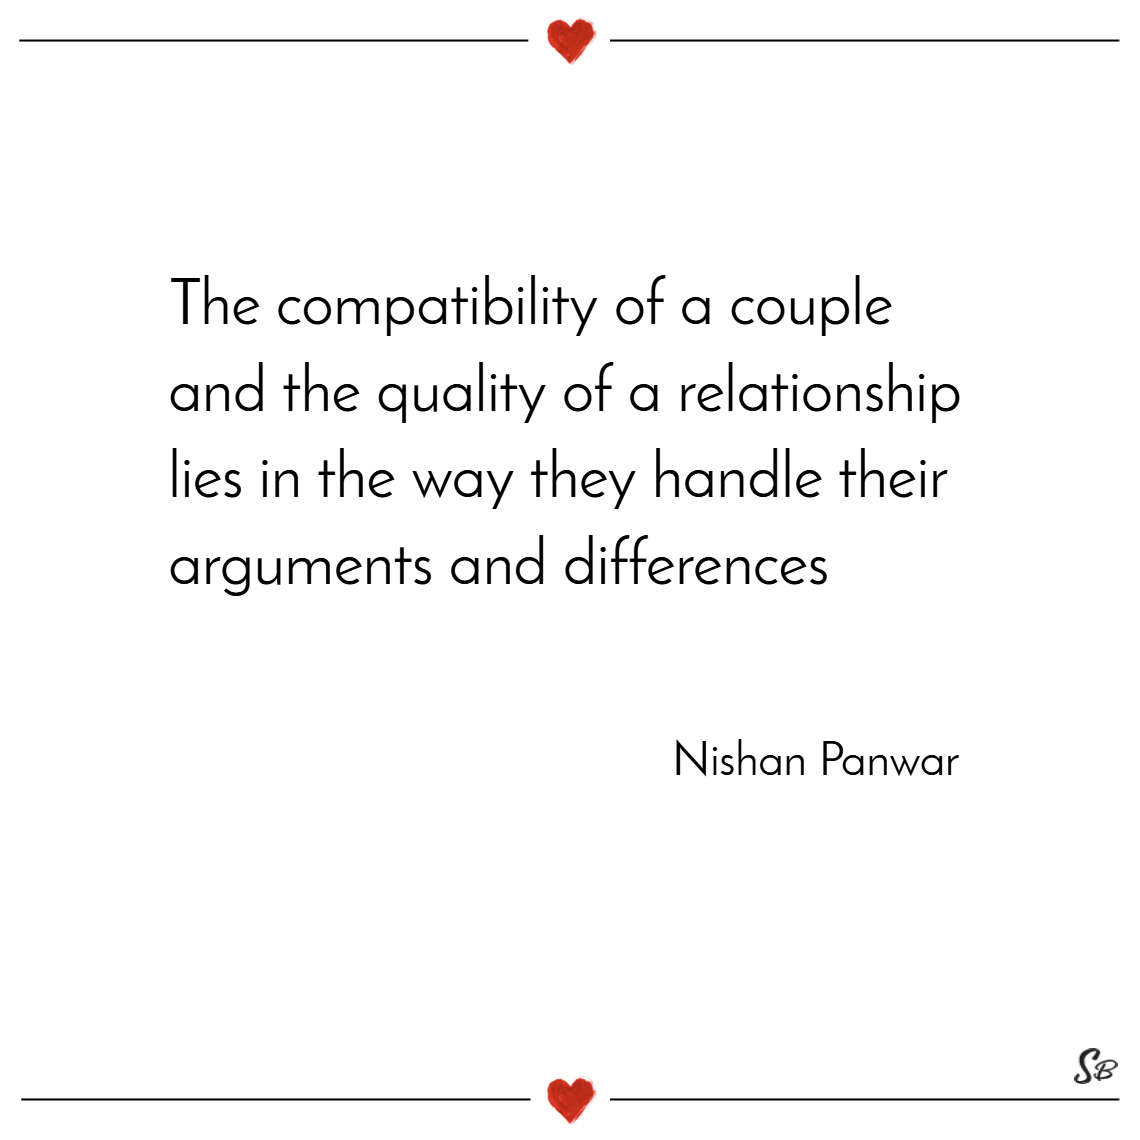 The compatibility of a couple and the quality of a